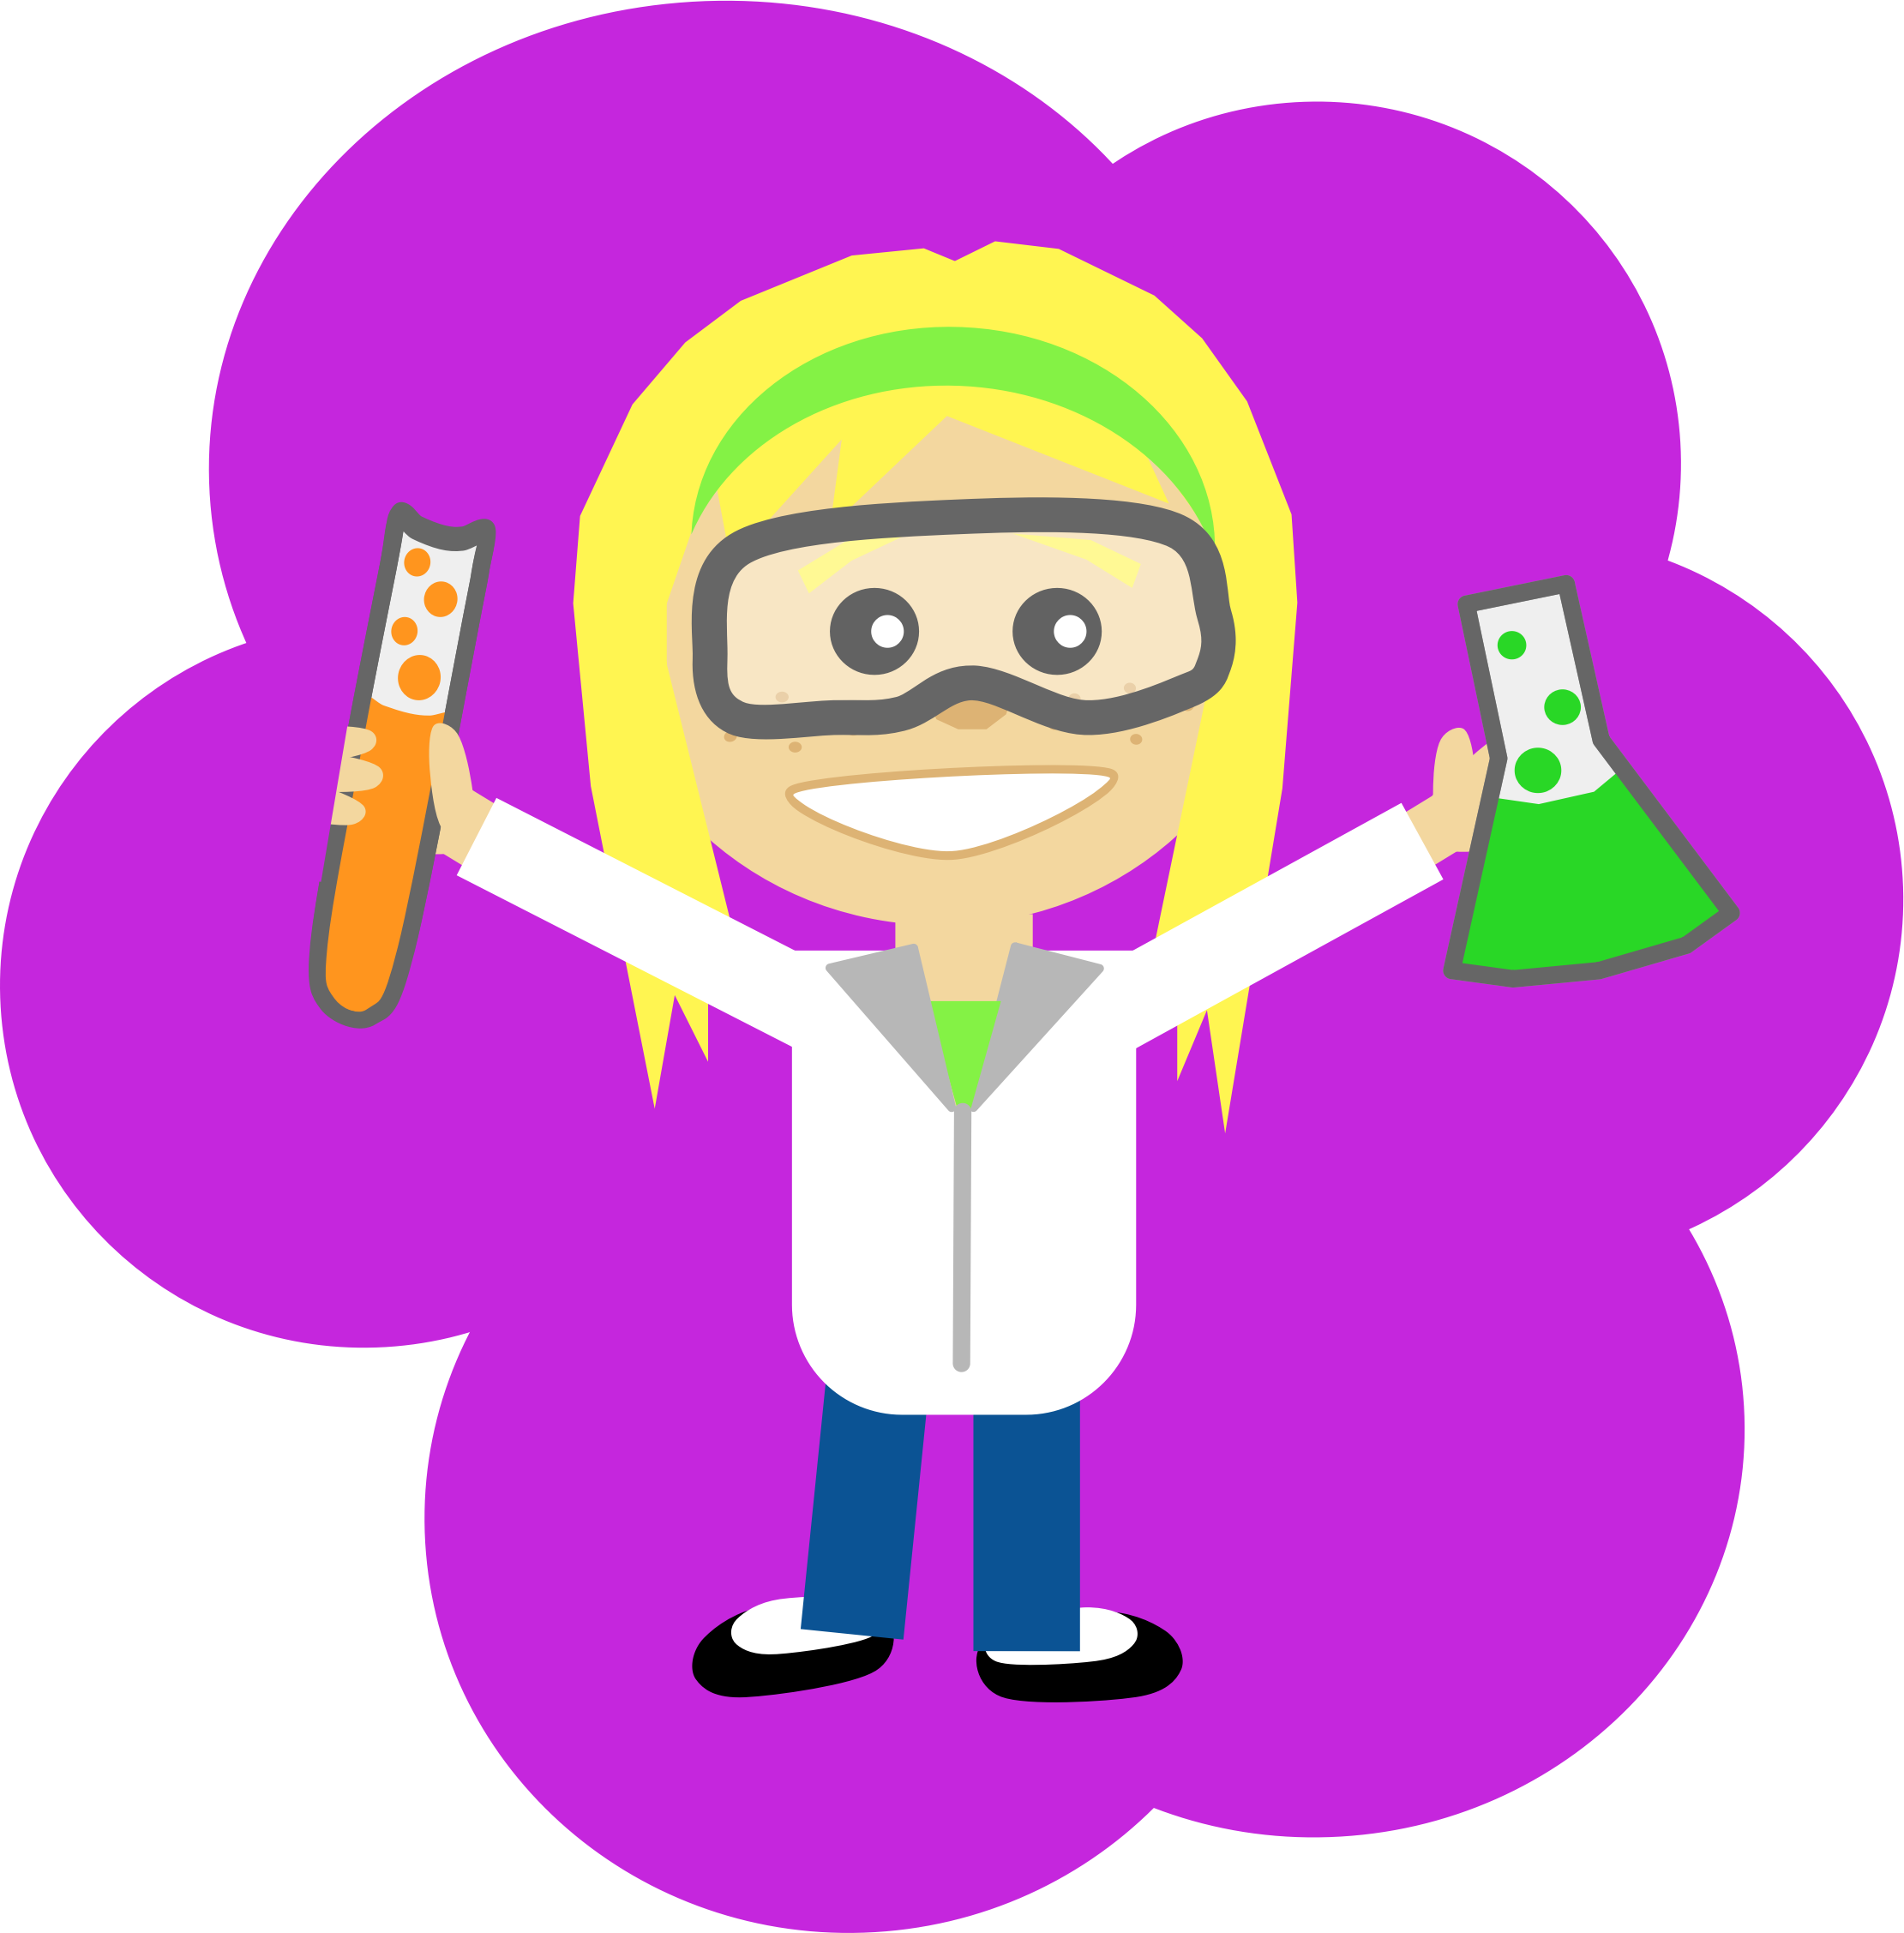 Girl big image png. Clipart explosion science